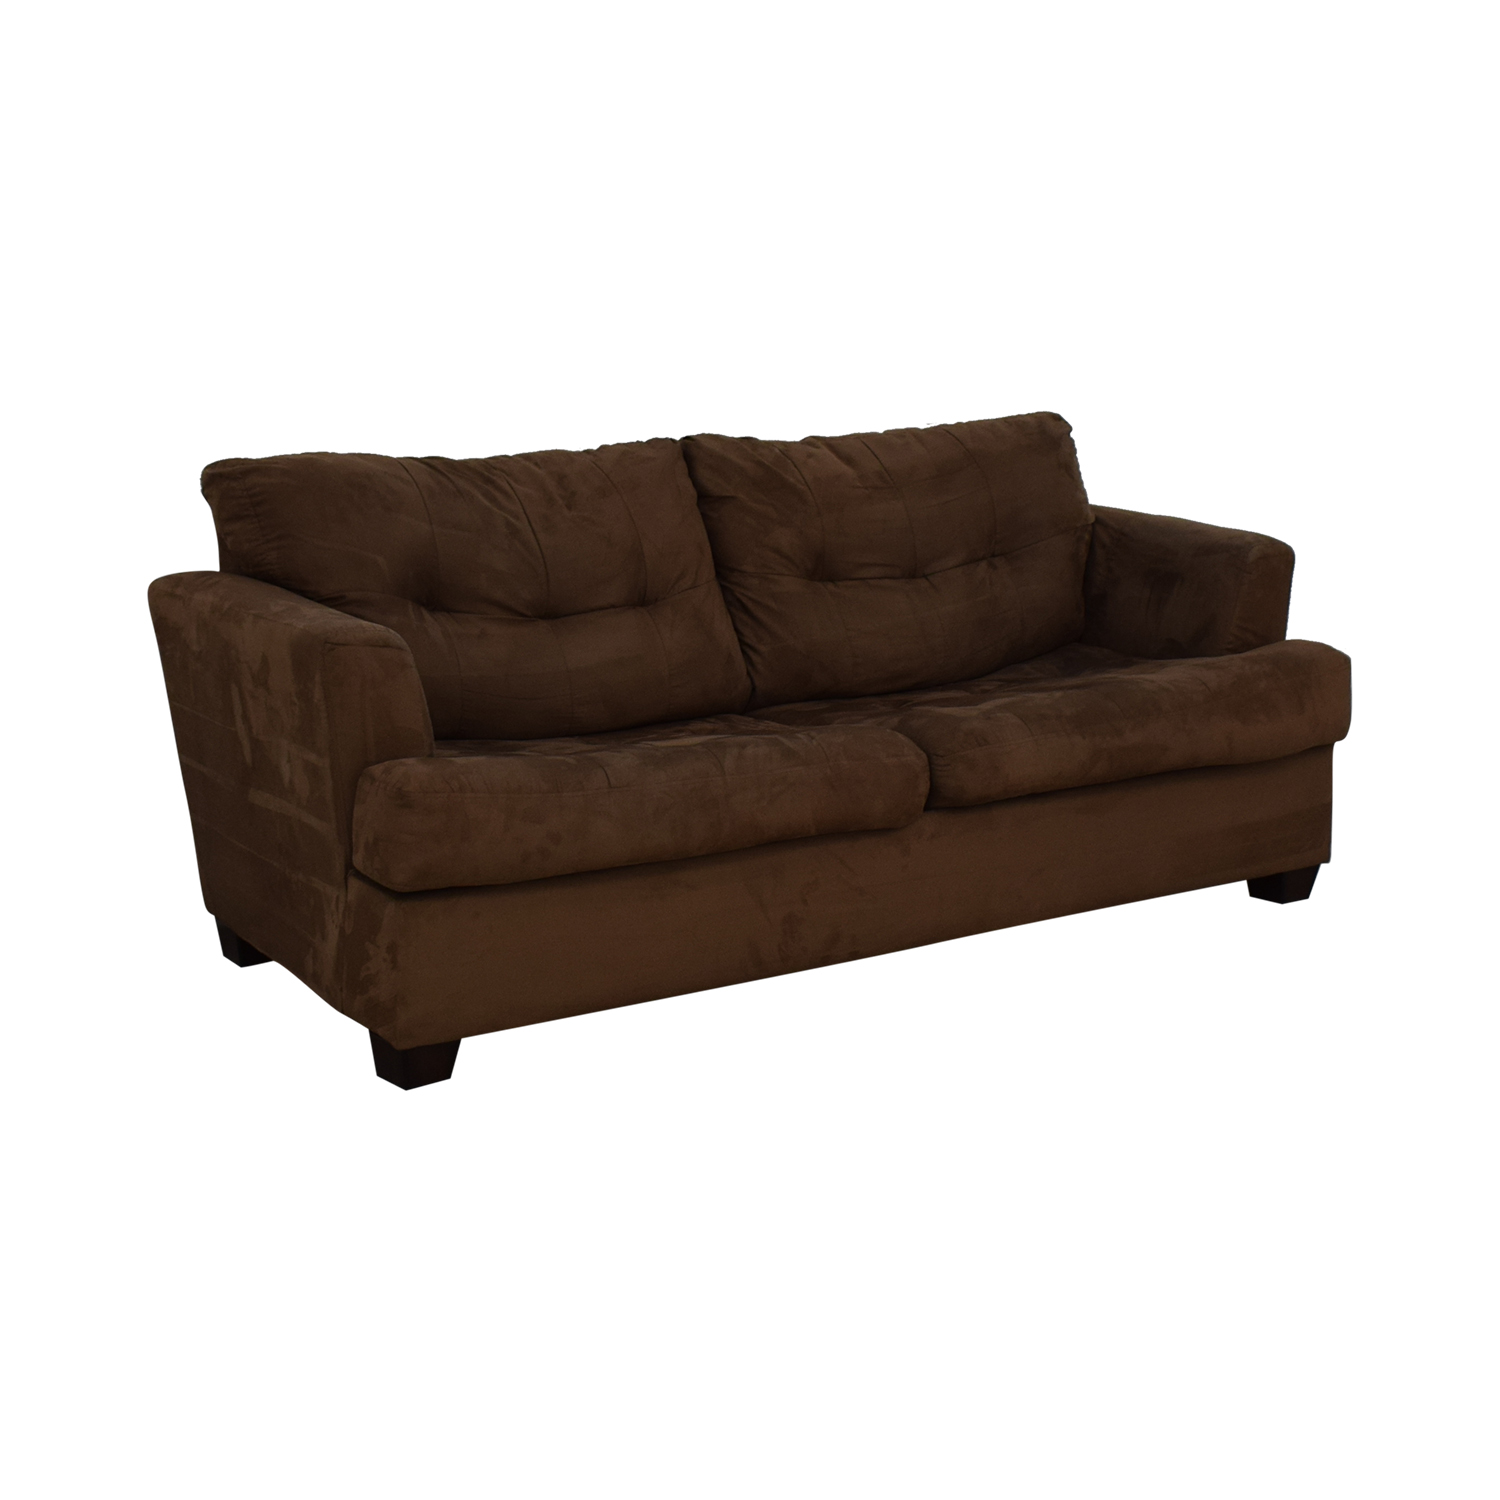 Jennifer Furniture Convertibles Queen Sleeper Sofa Clic Sofas